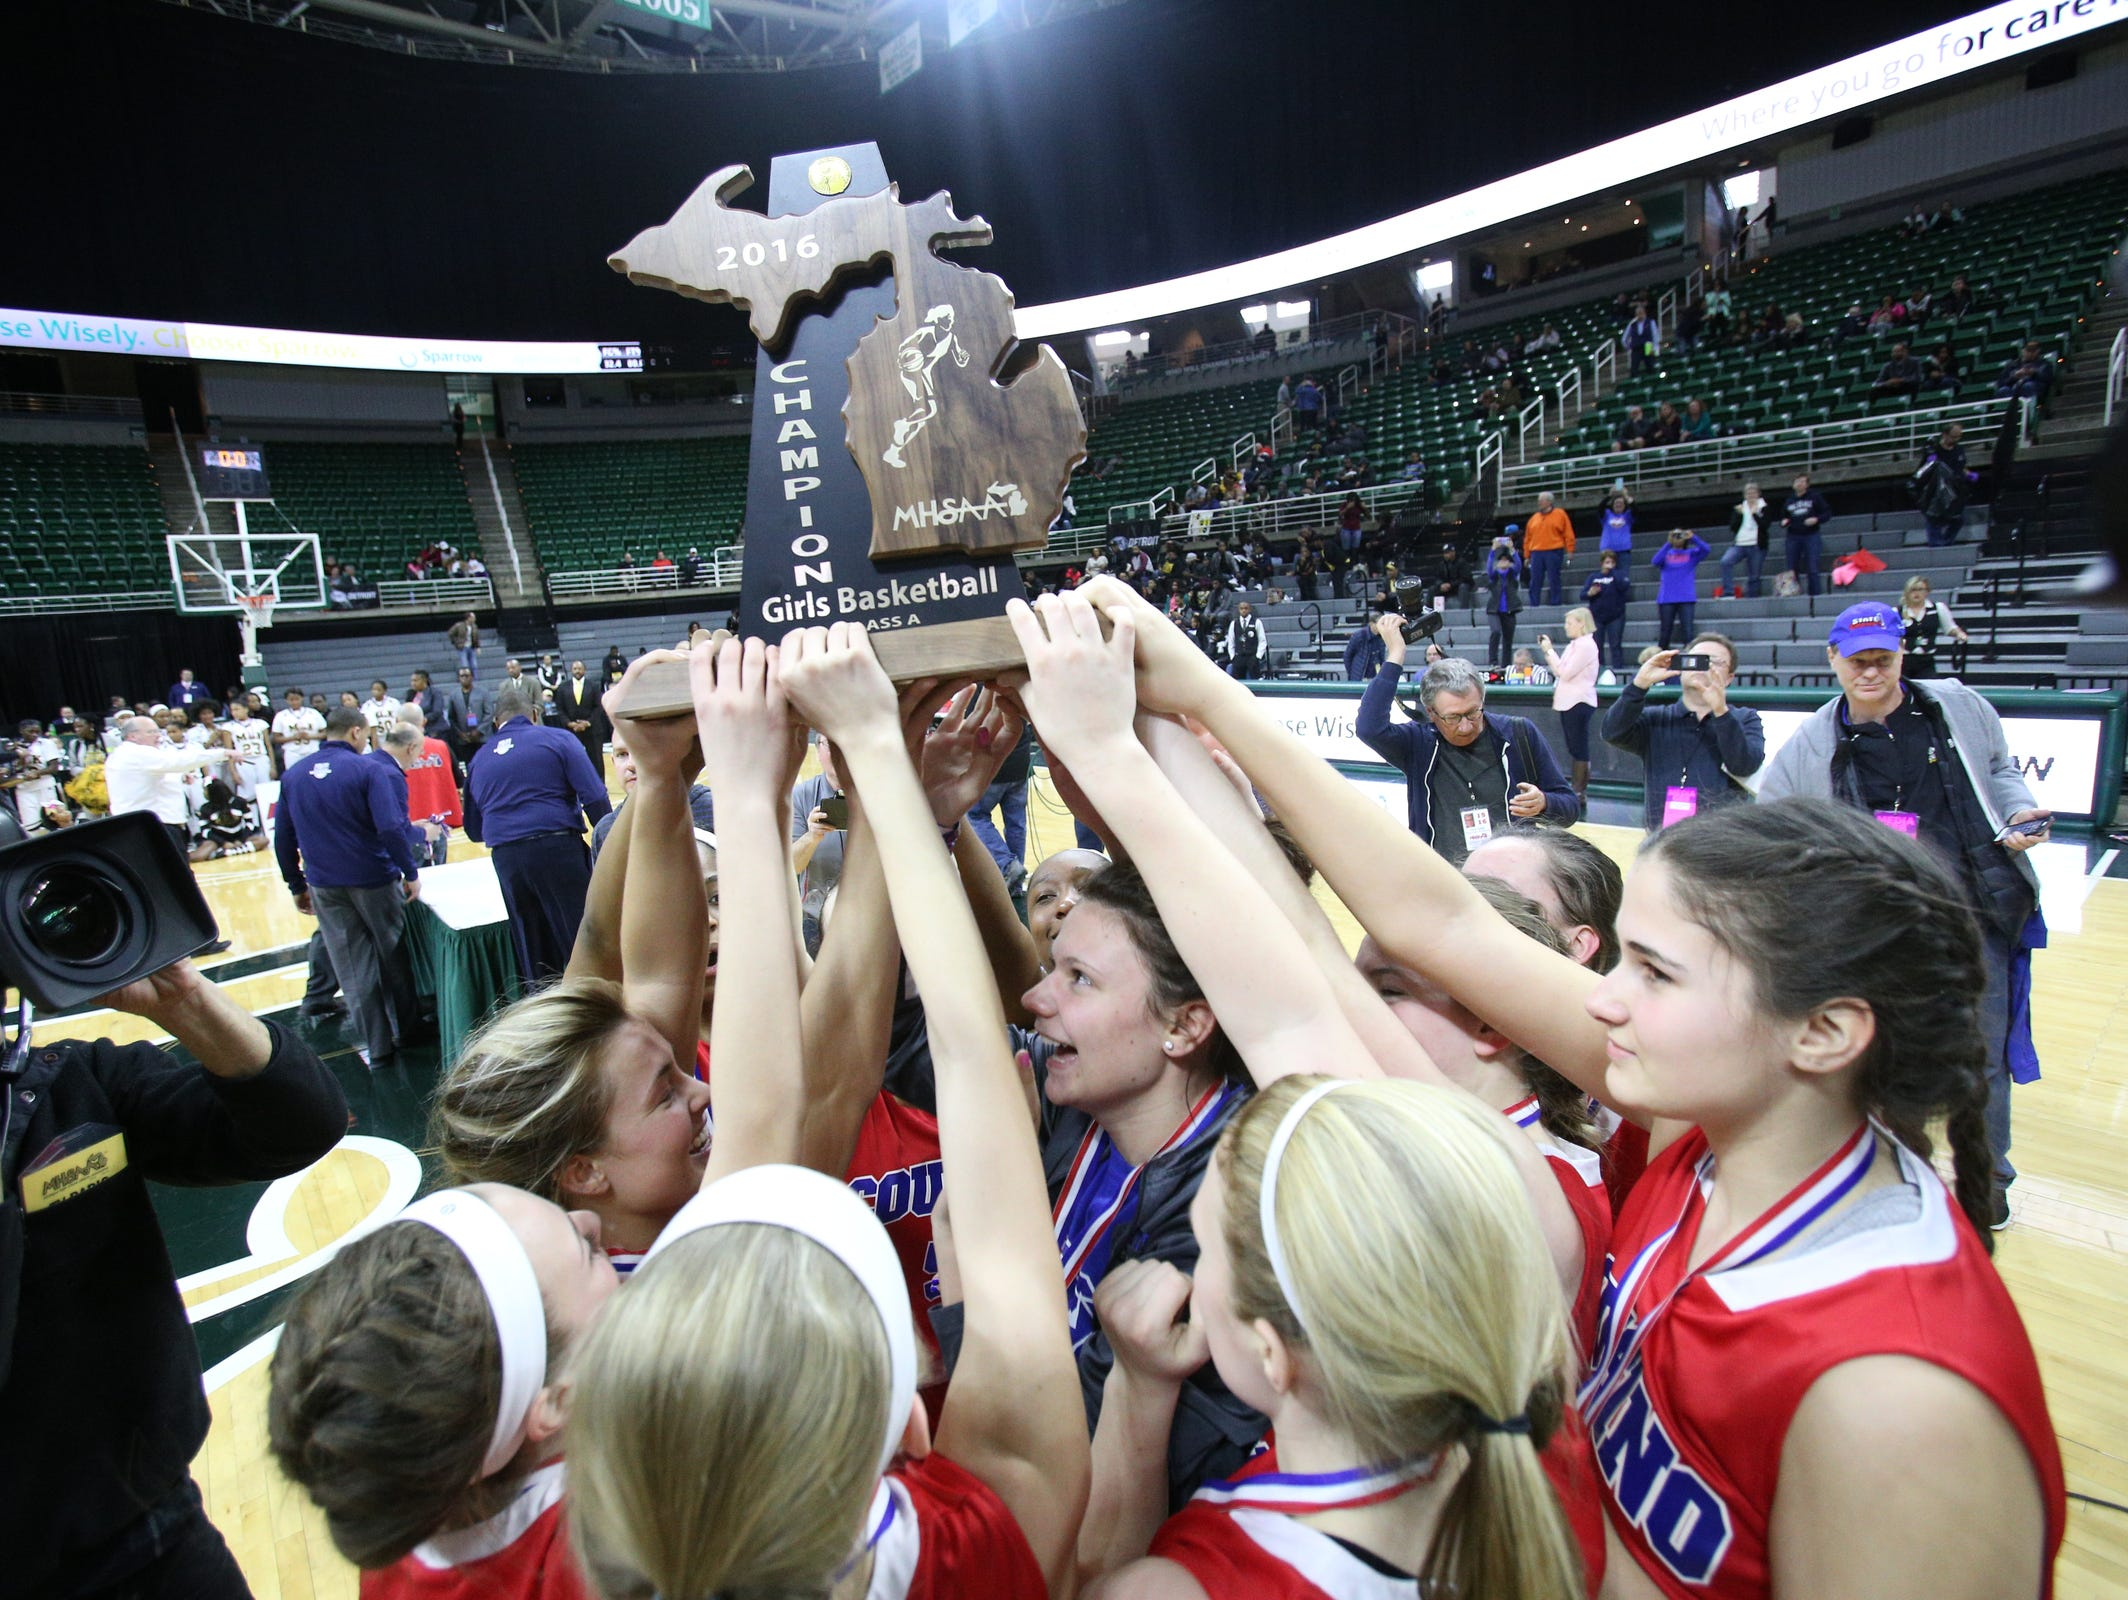 Warren Cousino holds up the trophy after defeating Detroit Martin Luther King 67-65, during the MHSAA girls basketball Class A finals at the Breslin Center in East Lansing on Saturday, March 19, 2016.